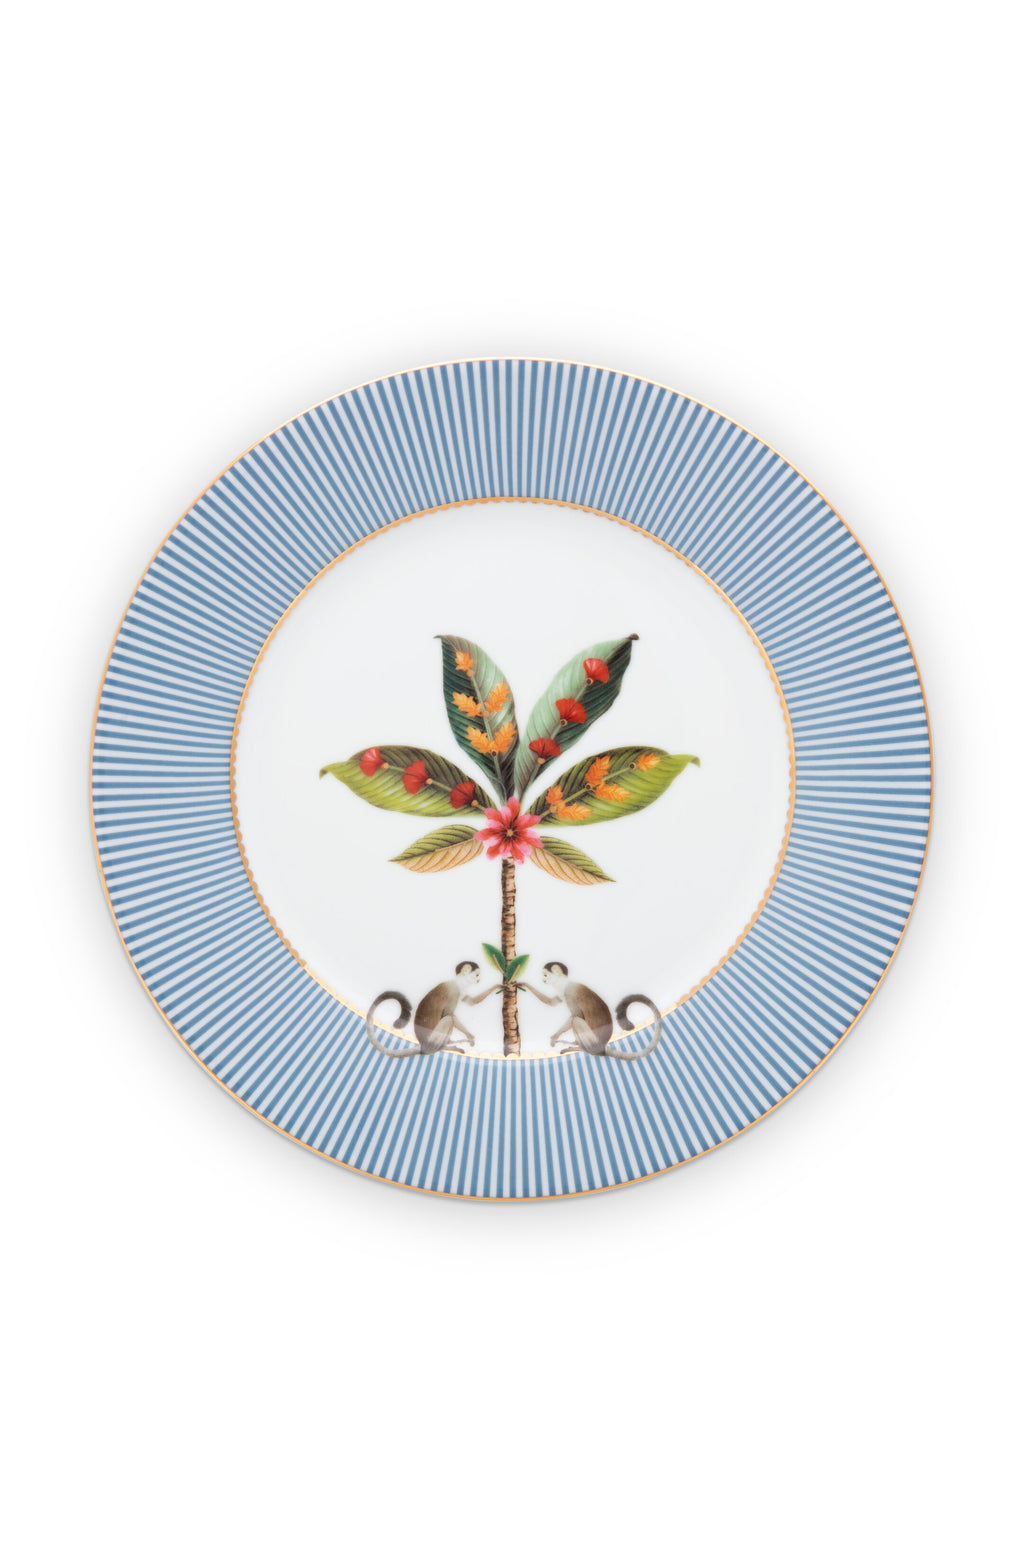 Pip Studio La Majorelle Plate 21cm- Set of 4